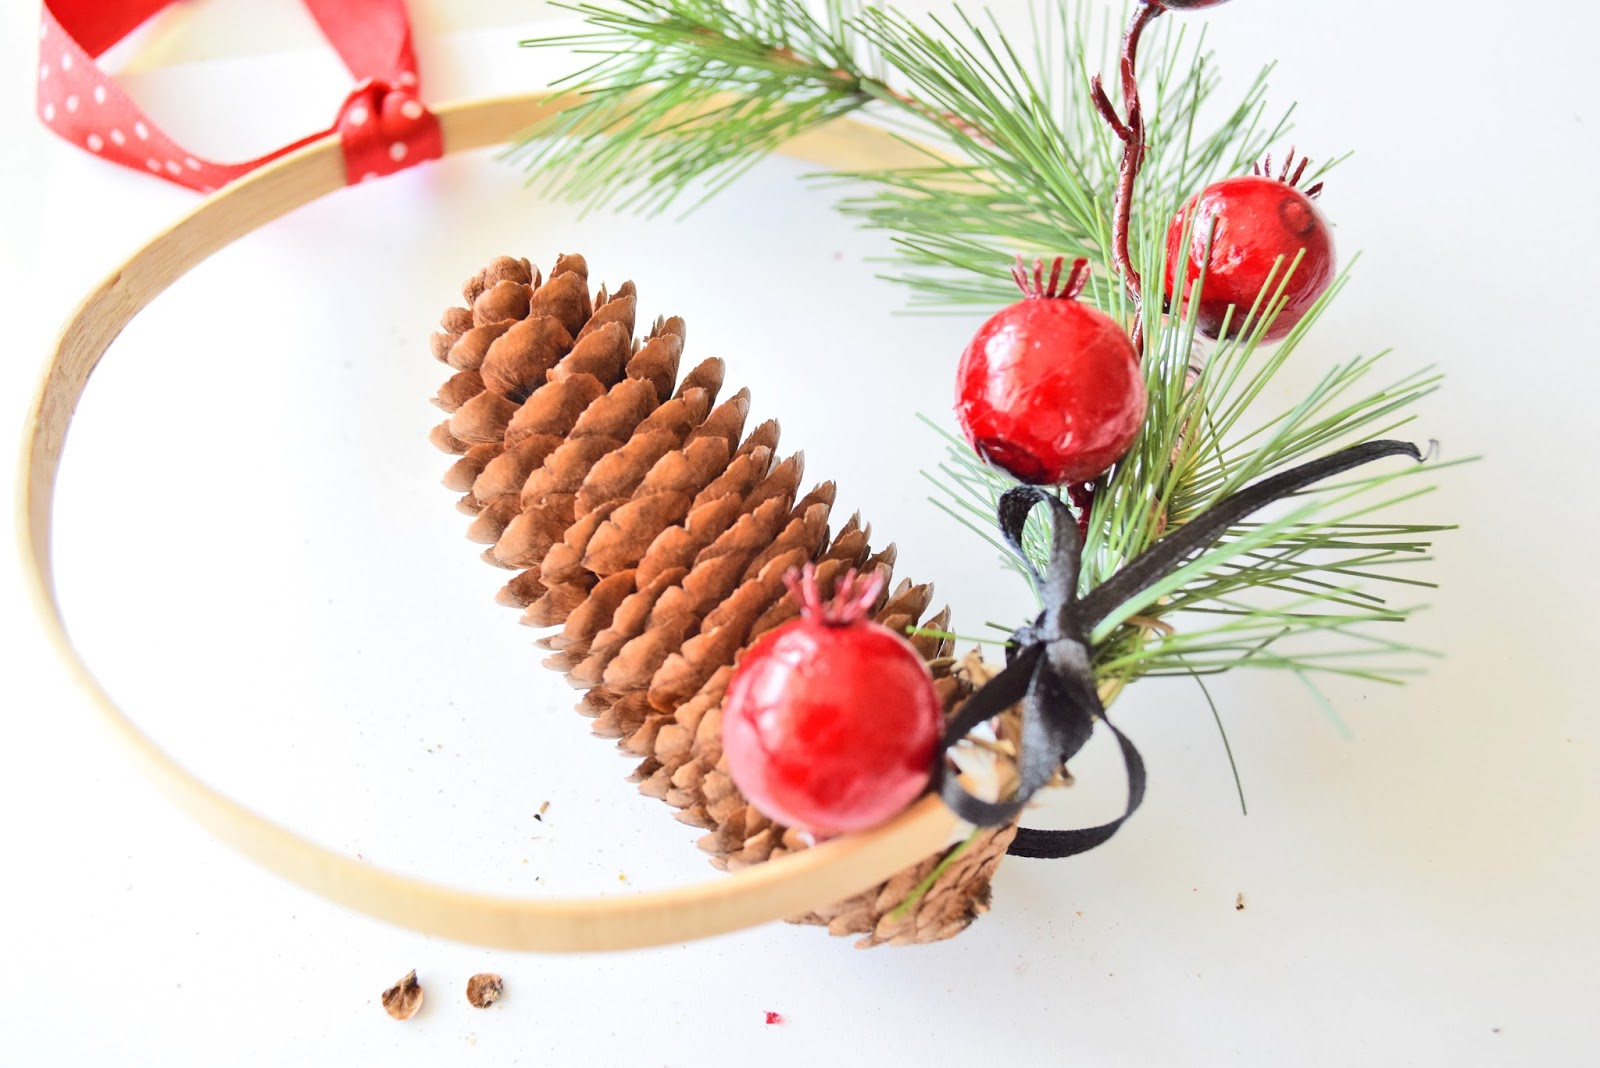 DIY Christmas Minimalist Wreath!